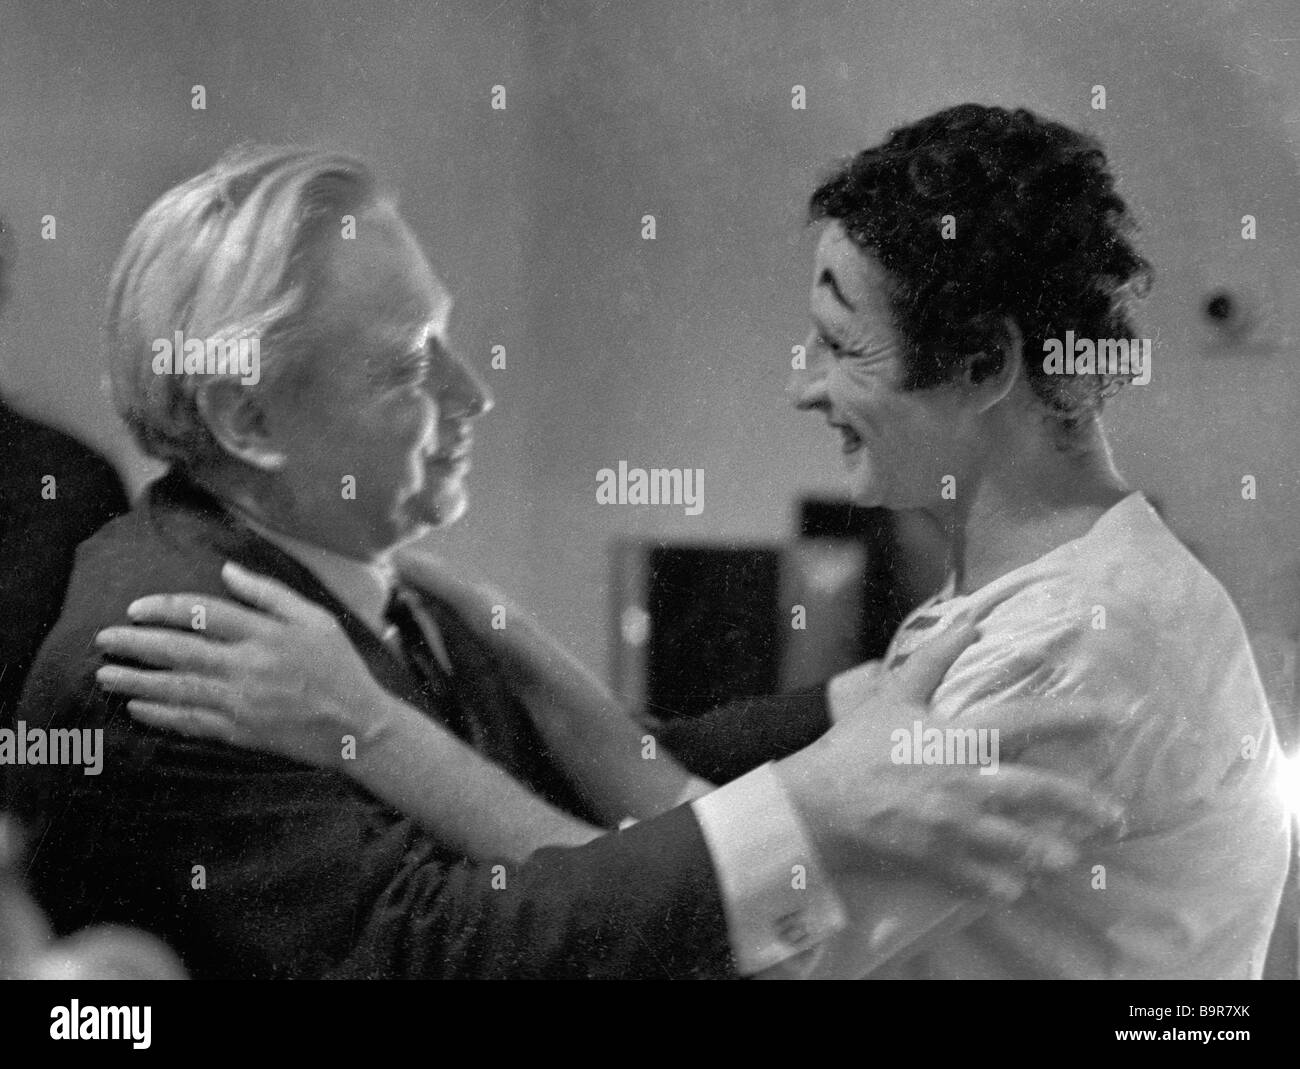 Actor and theater director Sergei Obraztsov left and French actor mime Marcel Marceau right Stock Photo